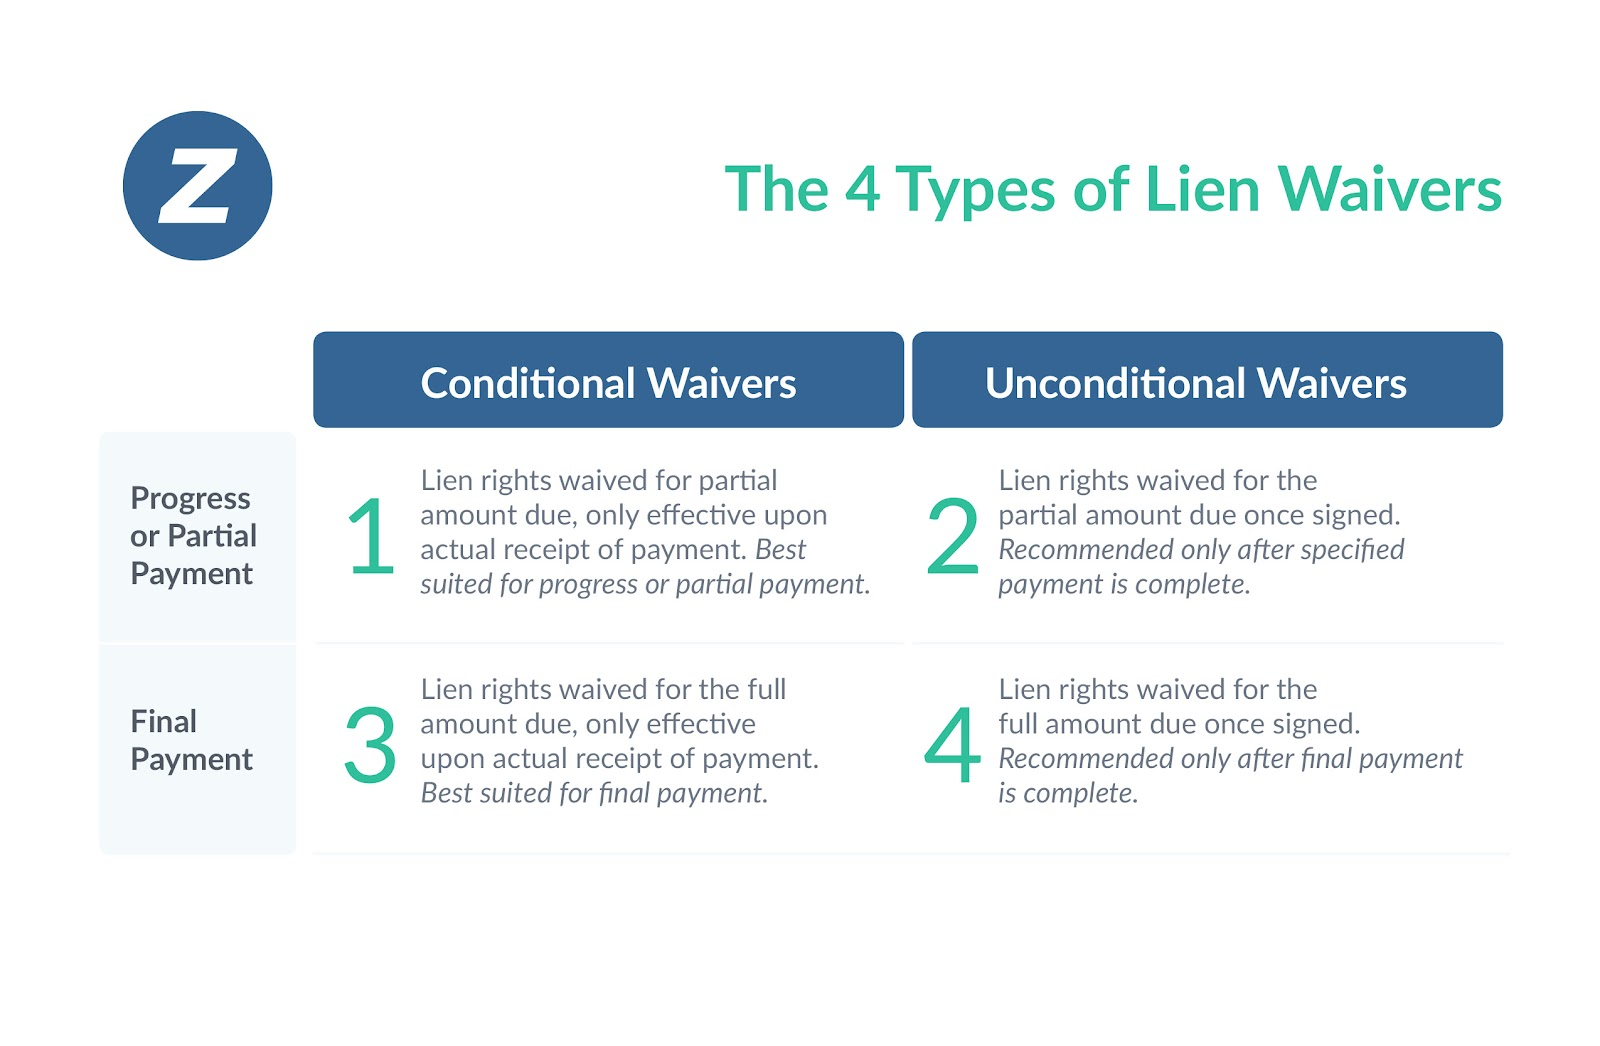 Lien Waivers: Ultimate Guide on Types and Best Practices